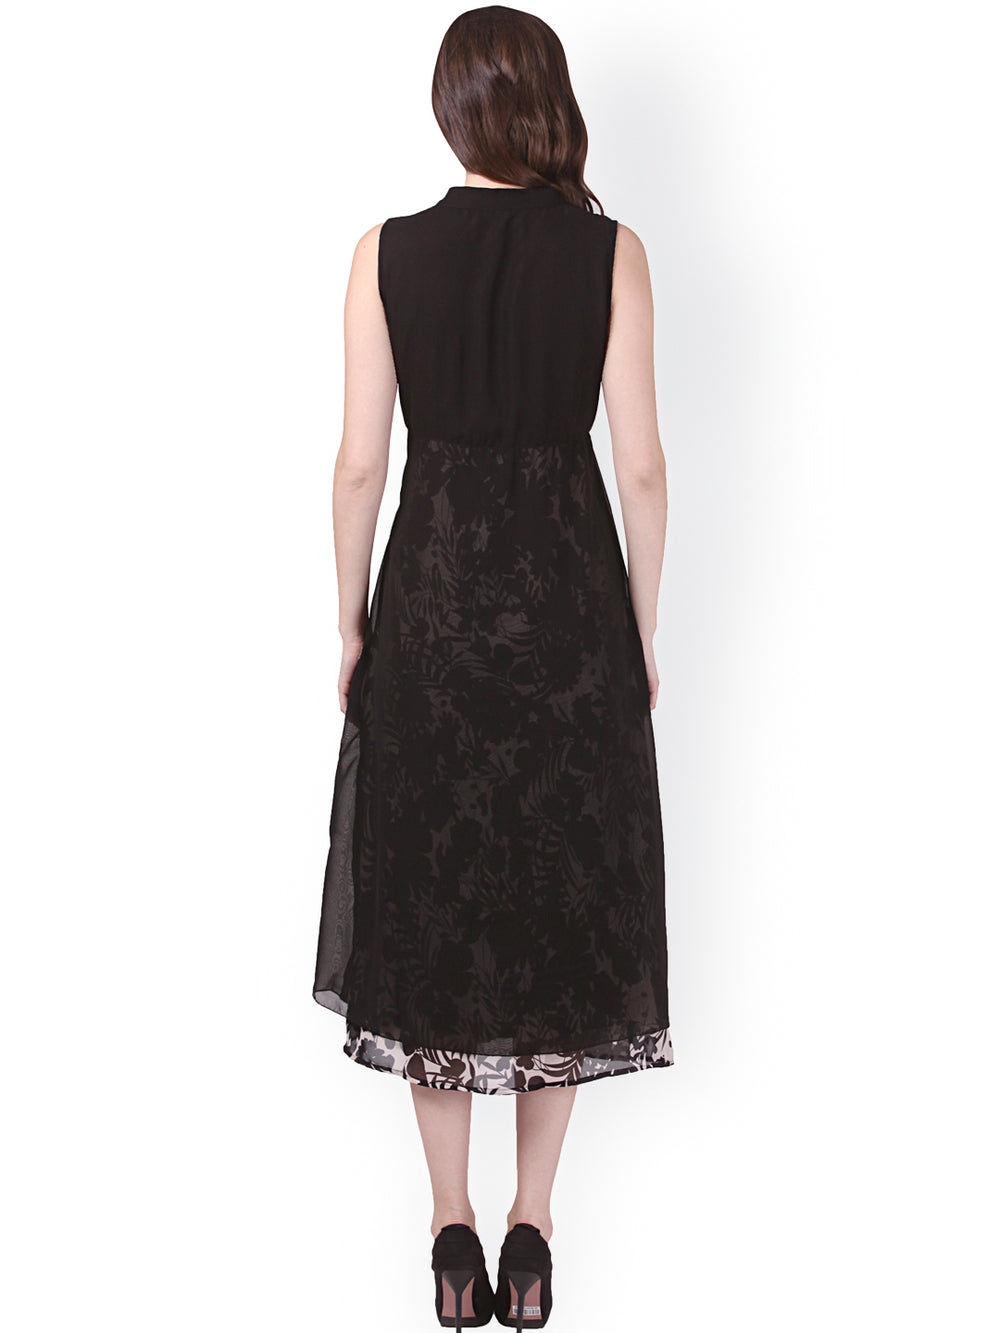 eyelet Black Printed Midi Dress